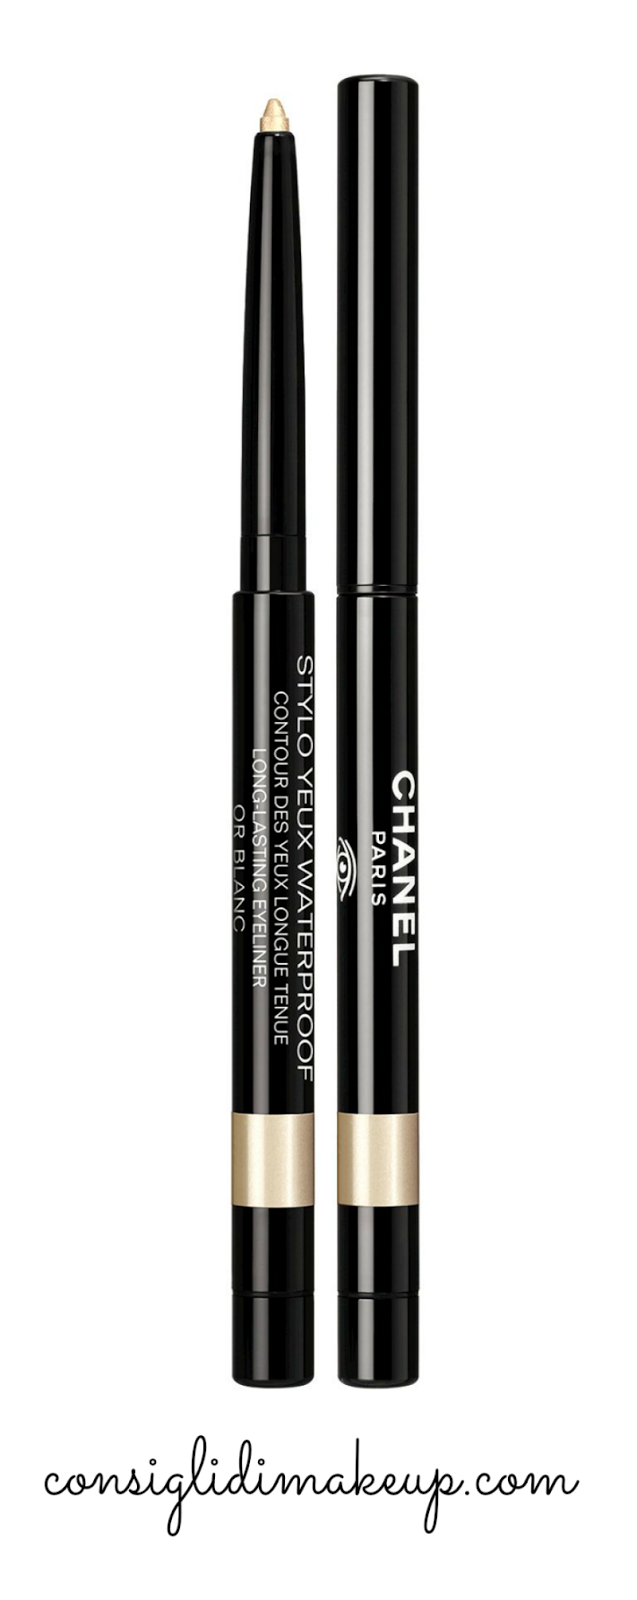 stylo yeux or blanc chanel natale